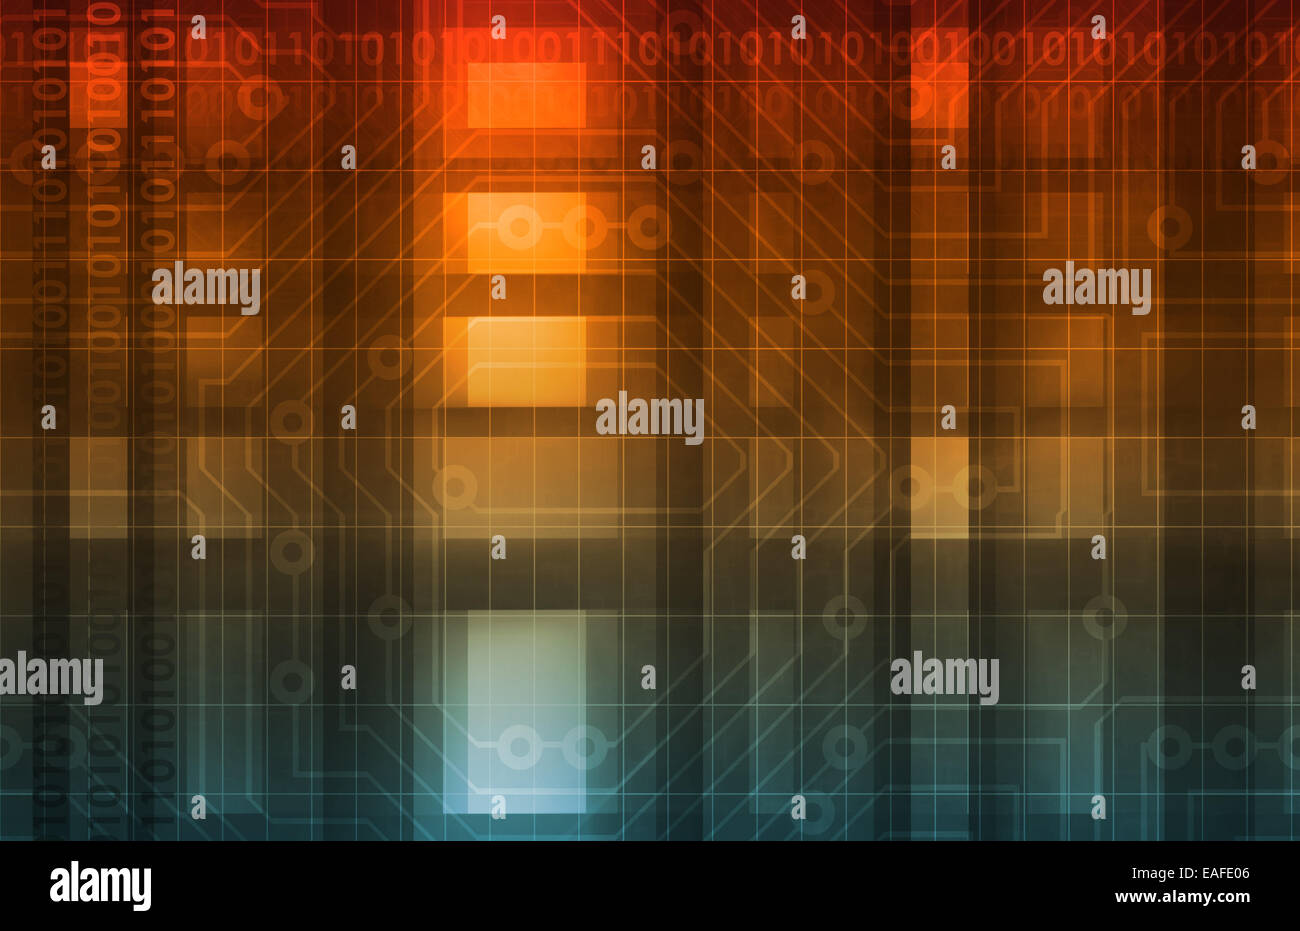 Energy Grid with Moving Electricity or Data - Stock Image